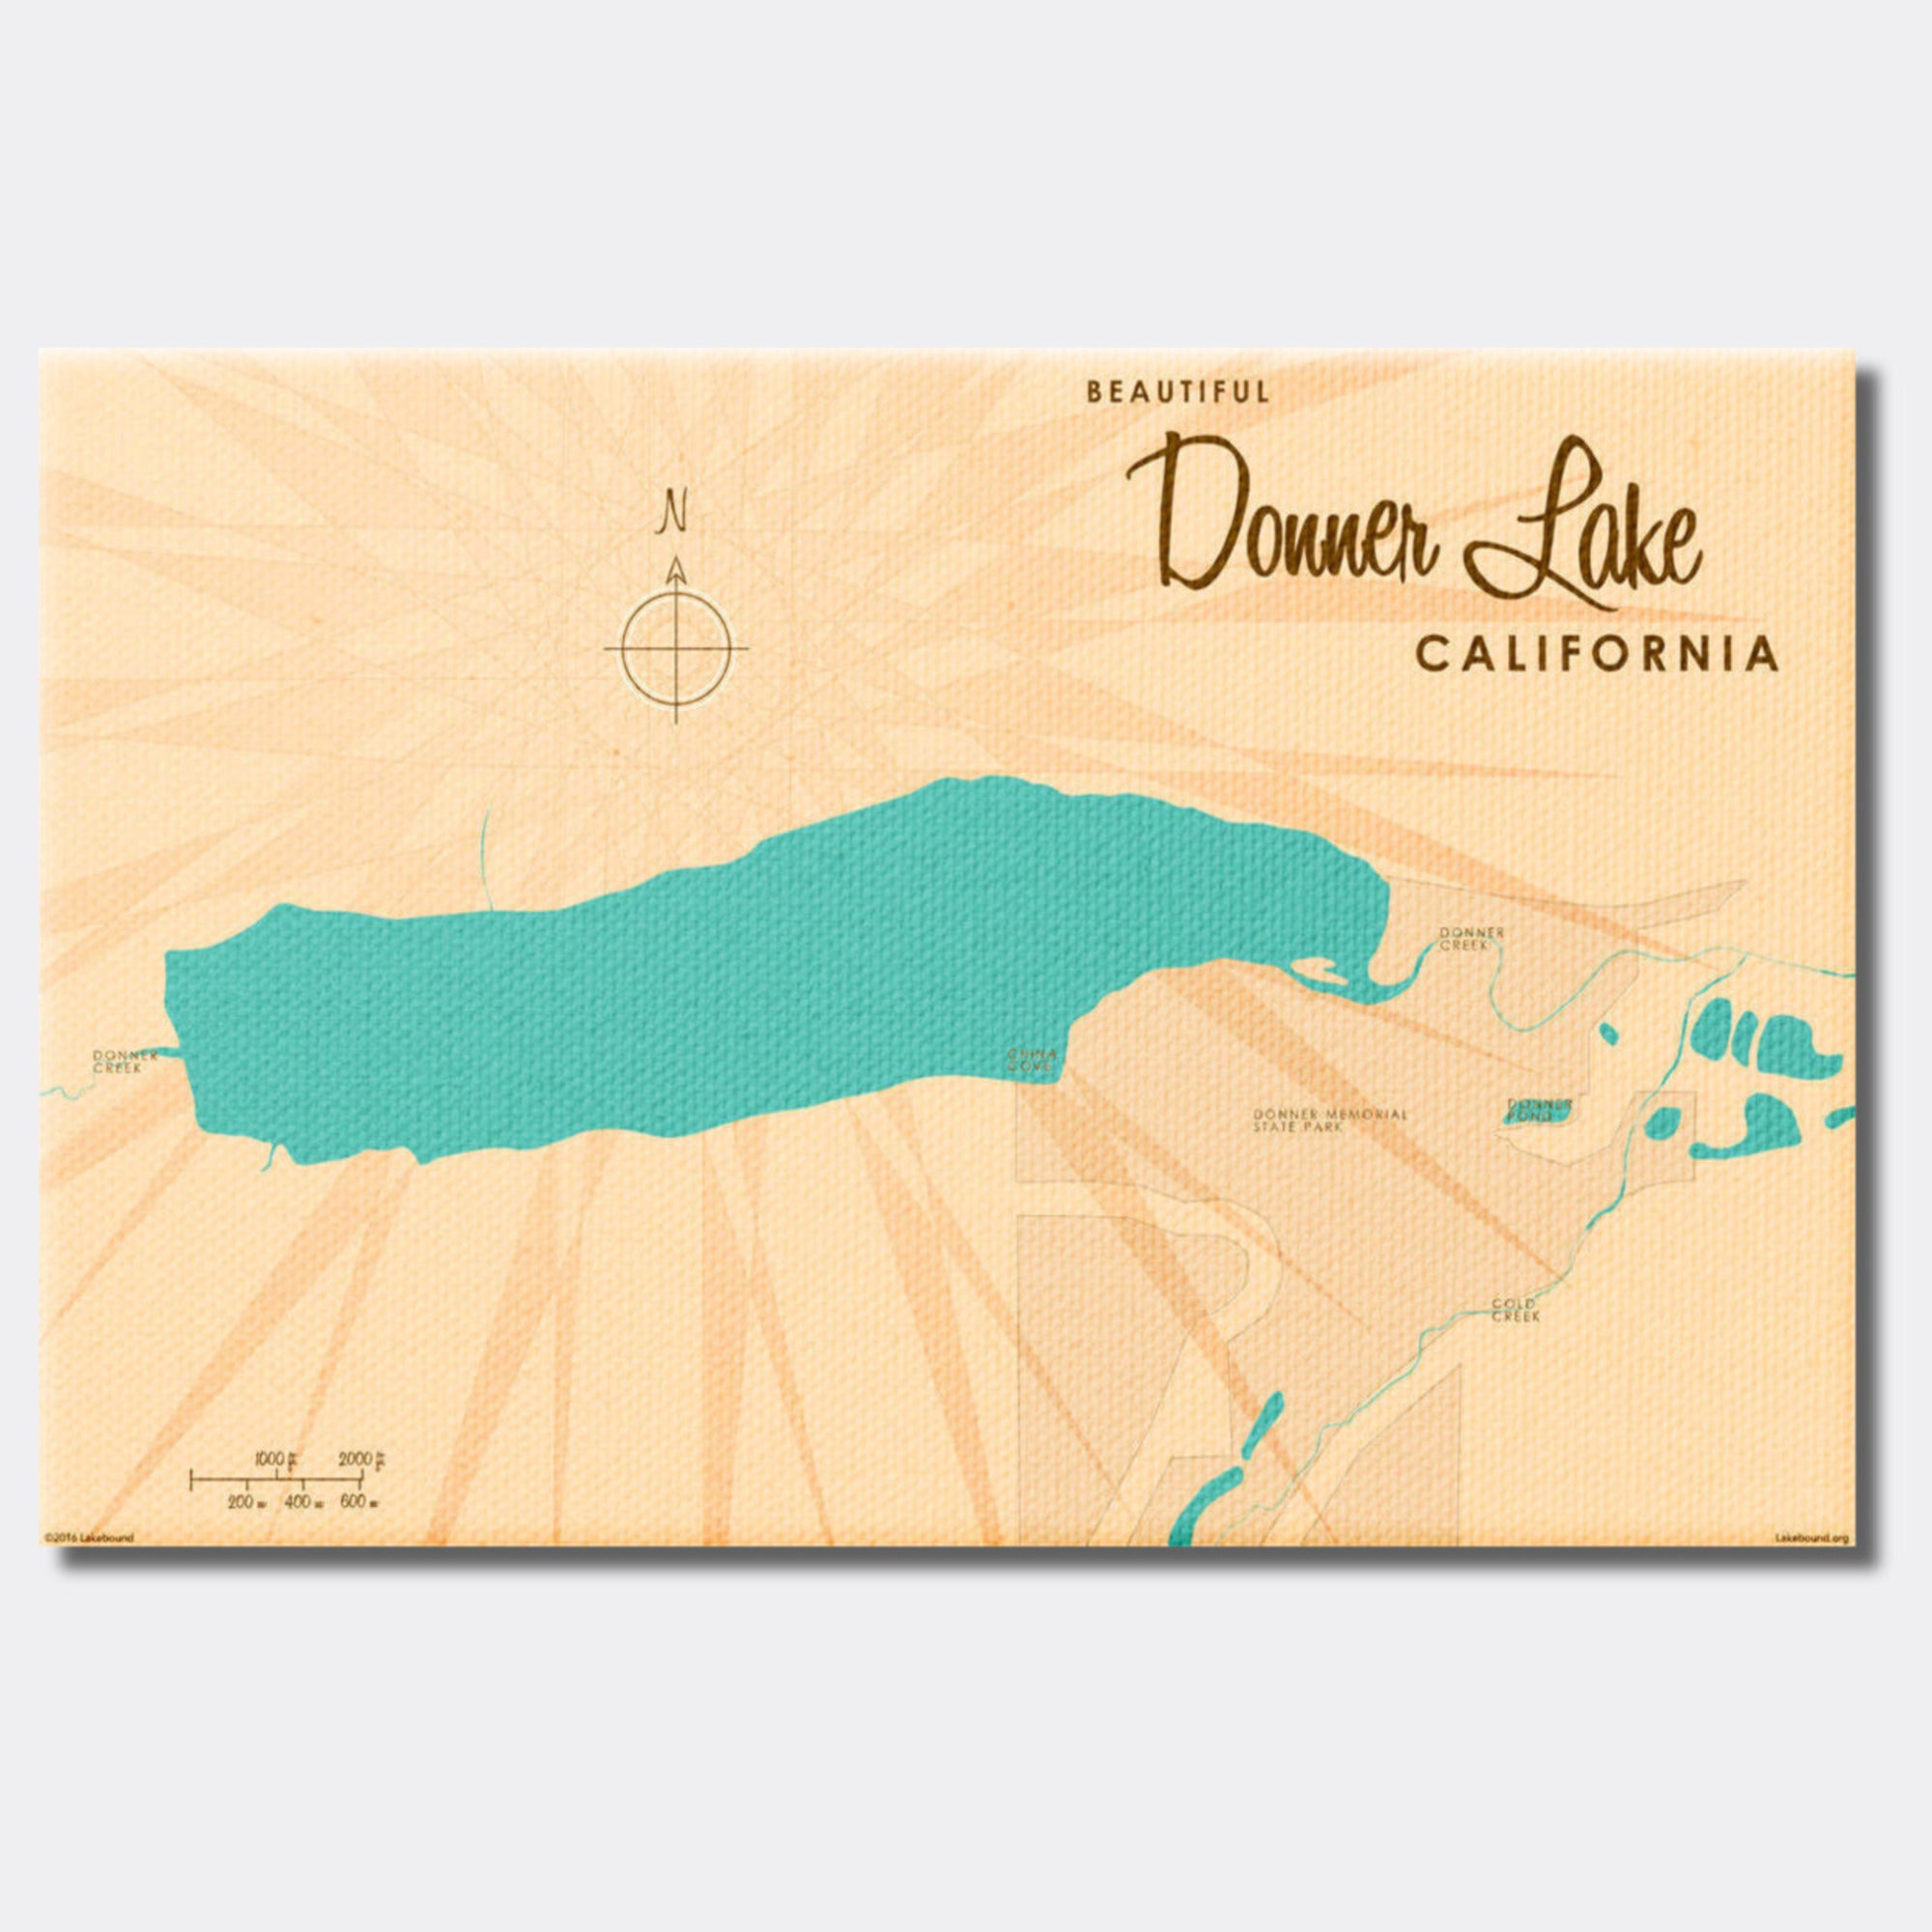 Donner Lake California, Canvas Print